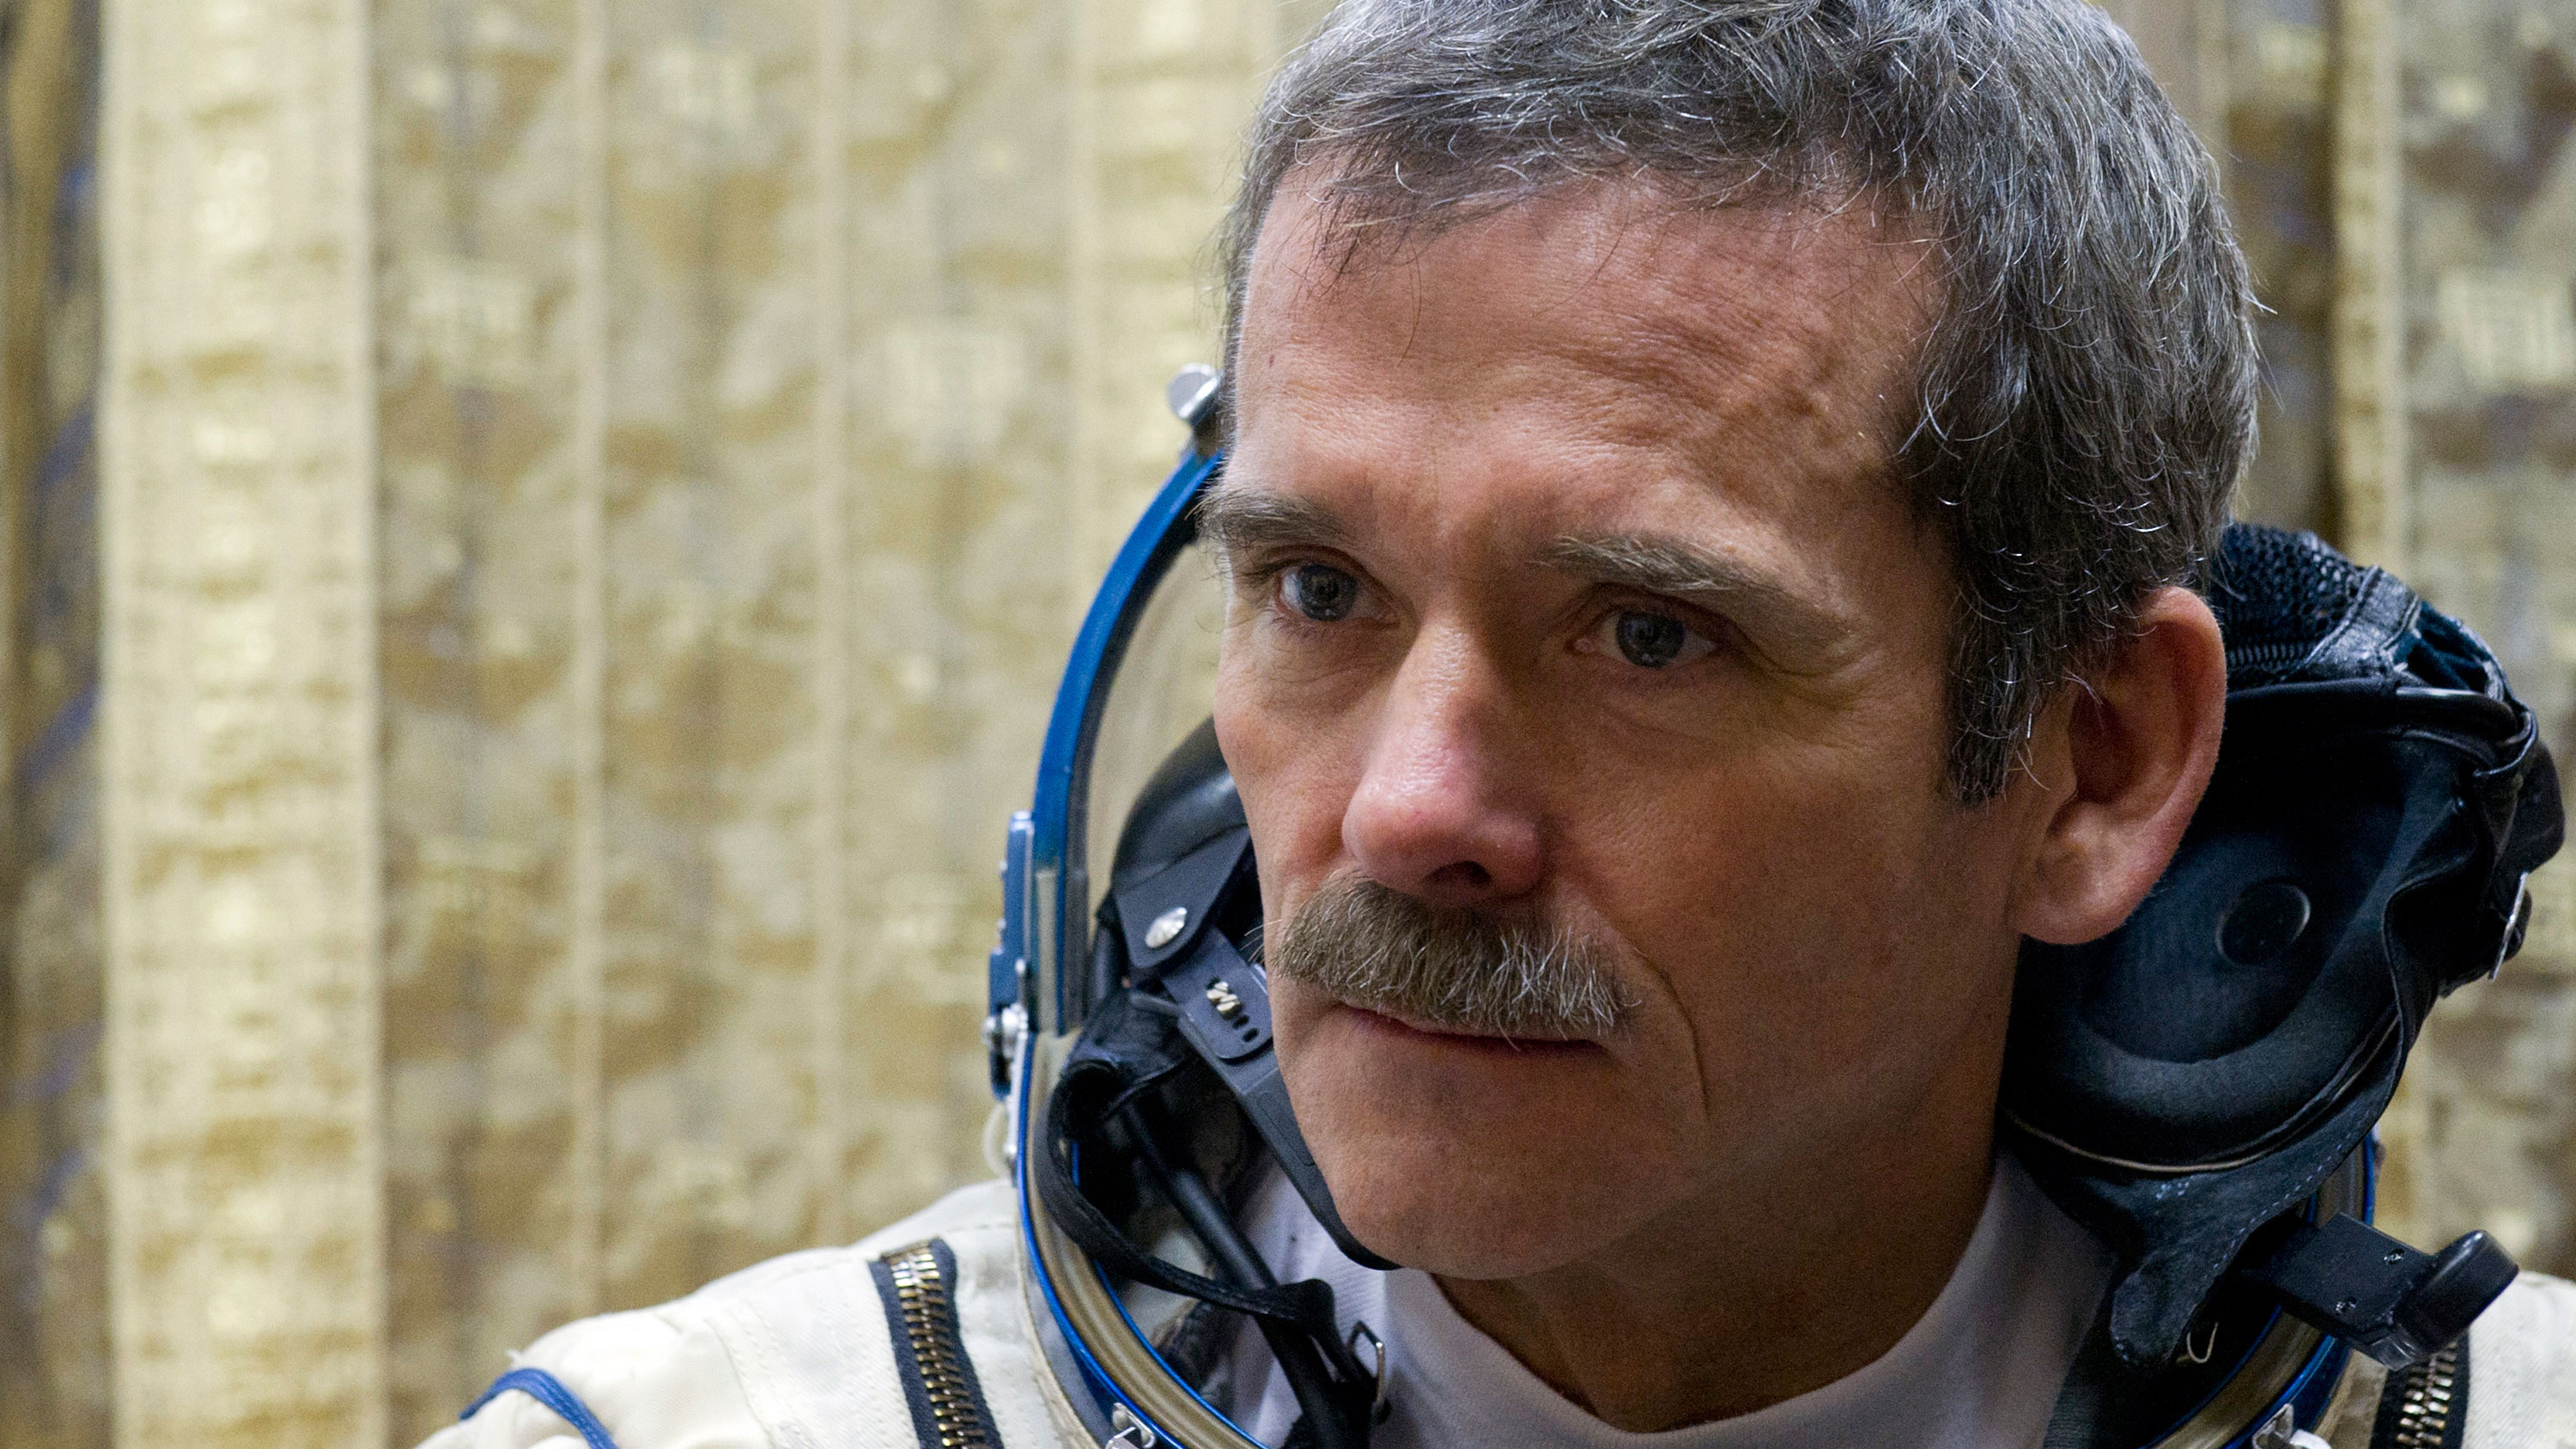 Canadian astronaut Chris Hadfield waits in his spacesuit before an exam on a simulator of the International Space Station at the Russian cosmonaut training centre at Star City outside Moscow November 28, 2012. Hadfield is part of a three-man crew scheduled to fly to the International Space Station in December. REUTERS/Sergei Remezov (RUSSIA - Tags: SCIENCE TECHNOLOGY TRANSPORT)